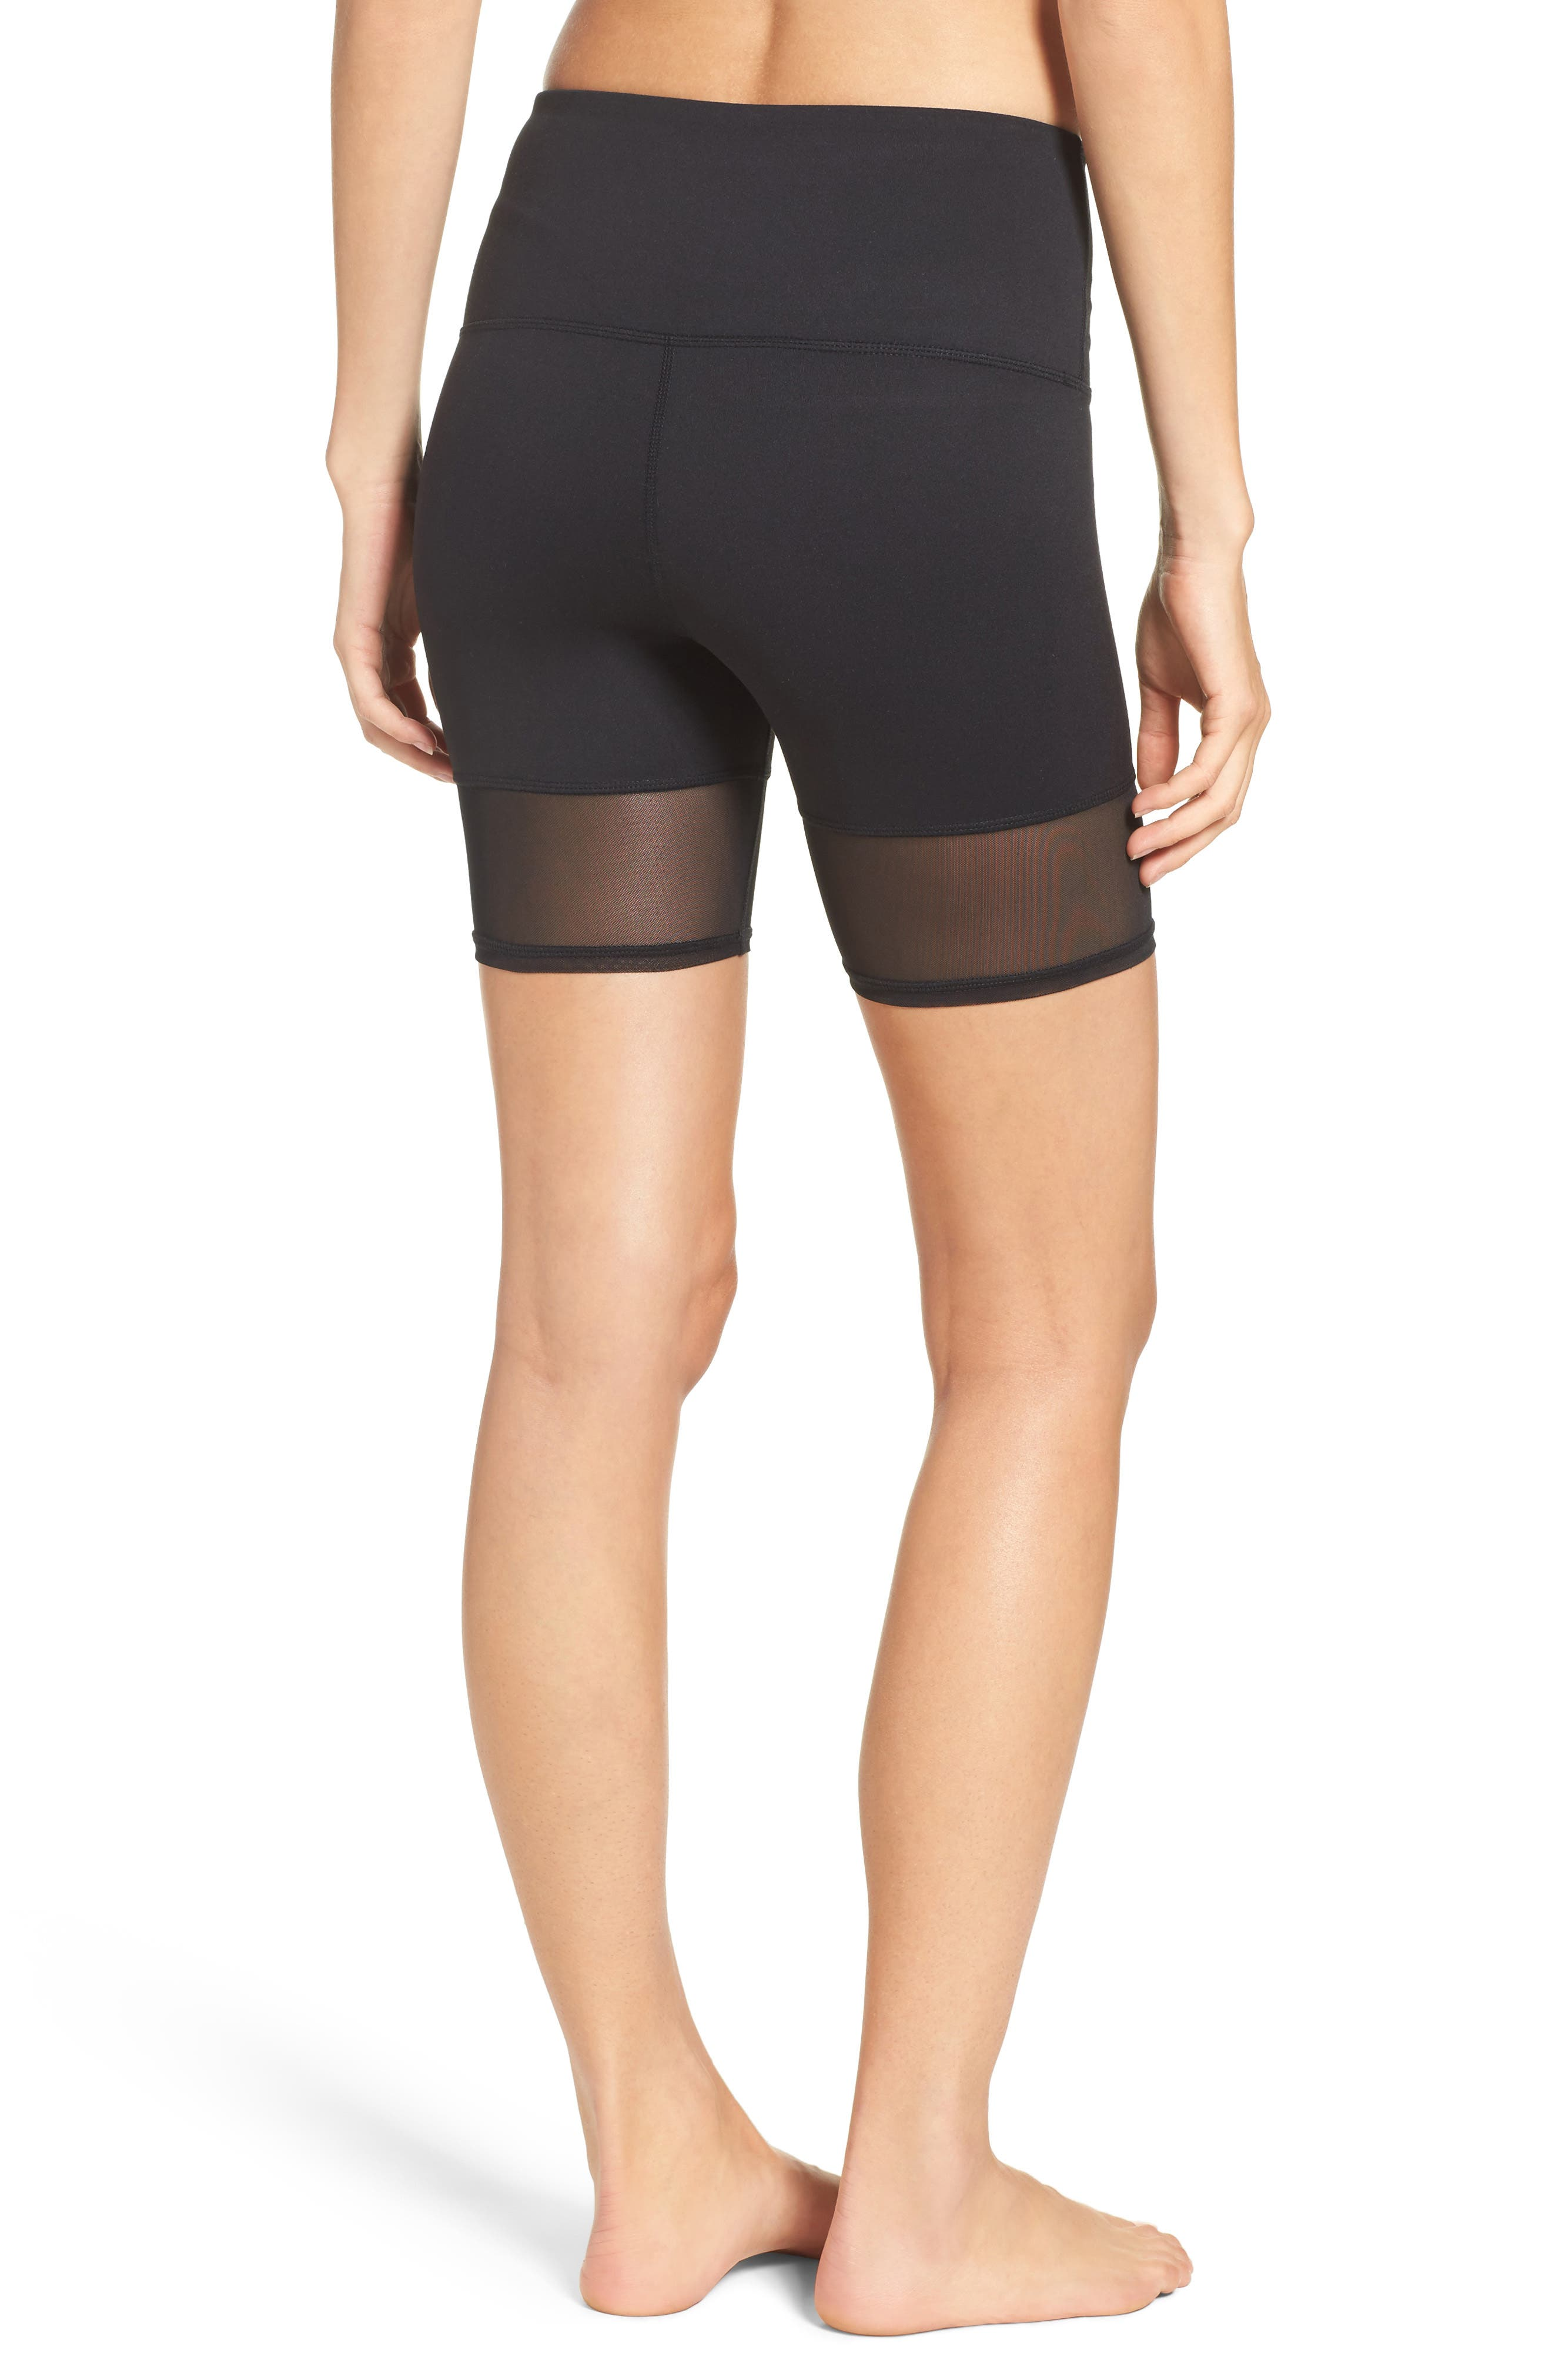 Mia High Waist Mesh Bike Shorts,                             Alternate thumbnail 2, color,                             001